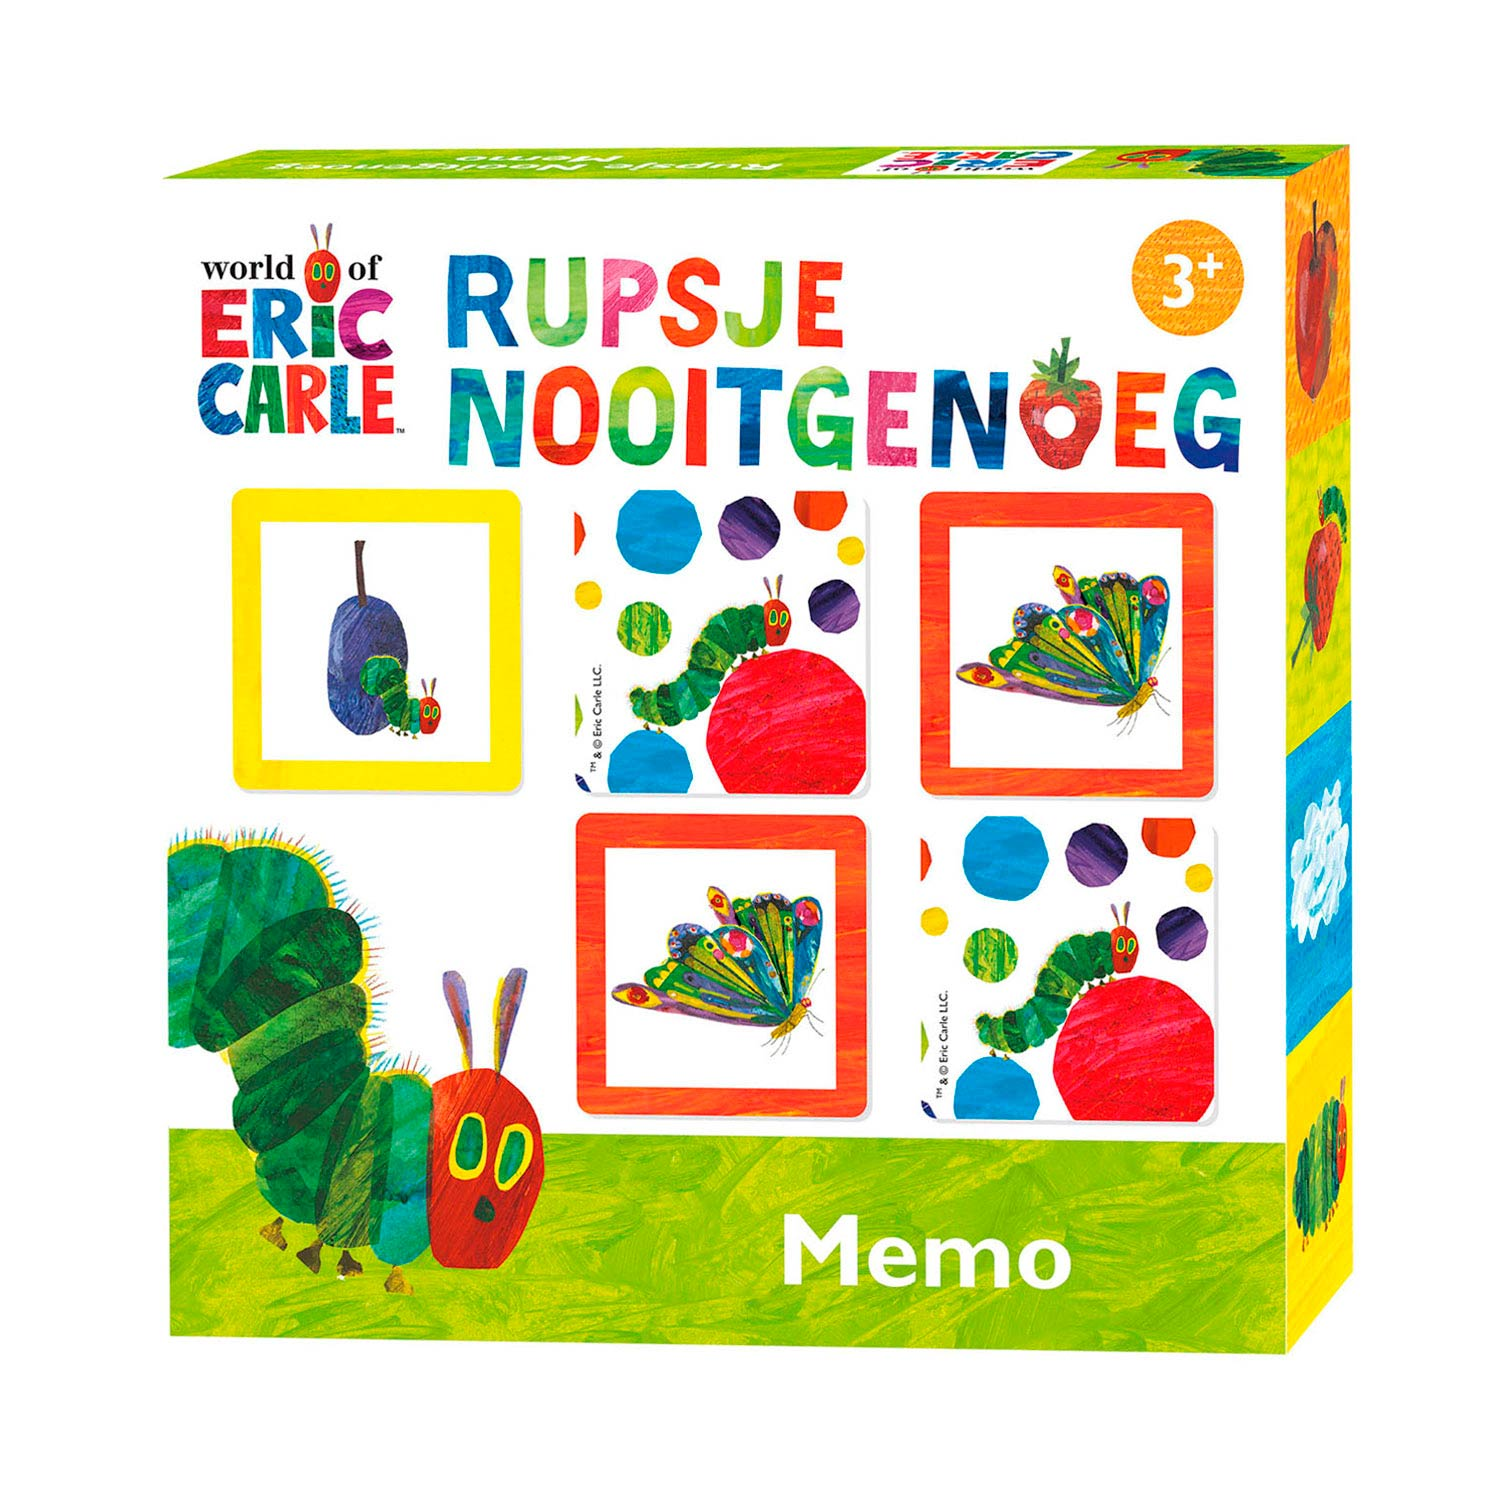 The Very Hungry Caterpillar Memo   Thimble Toys